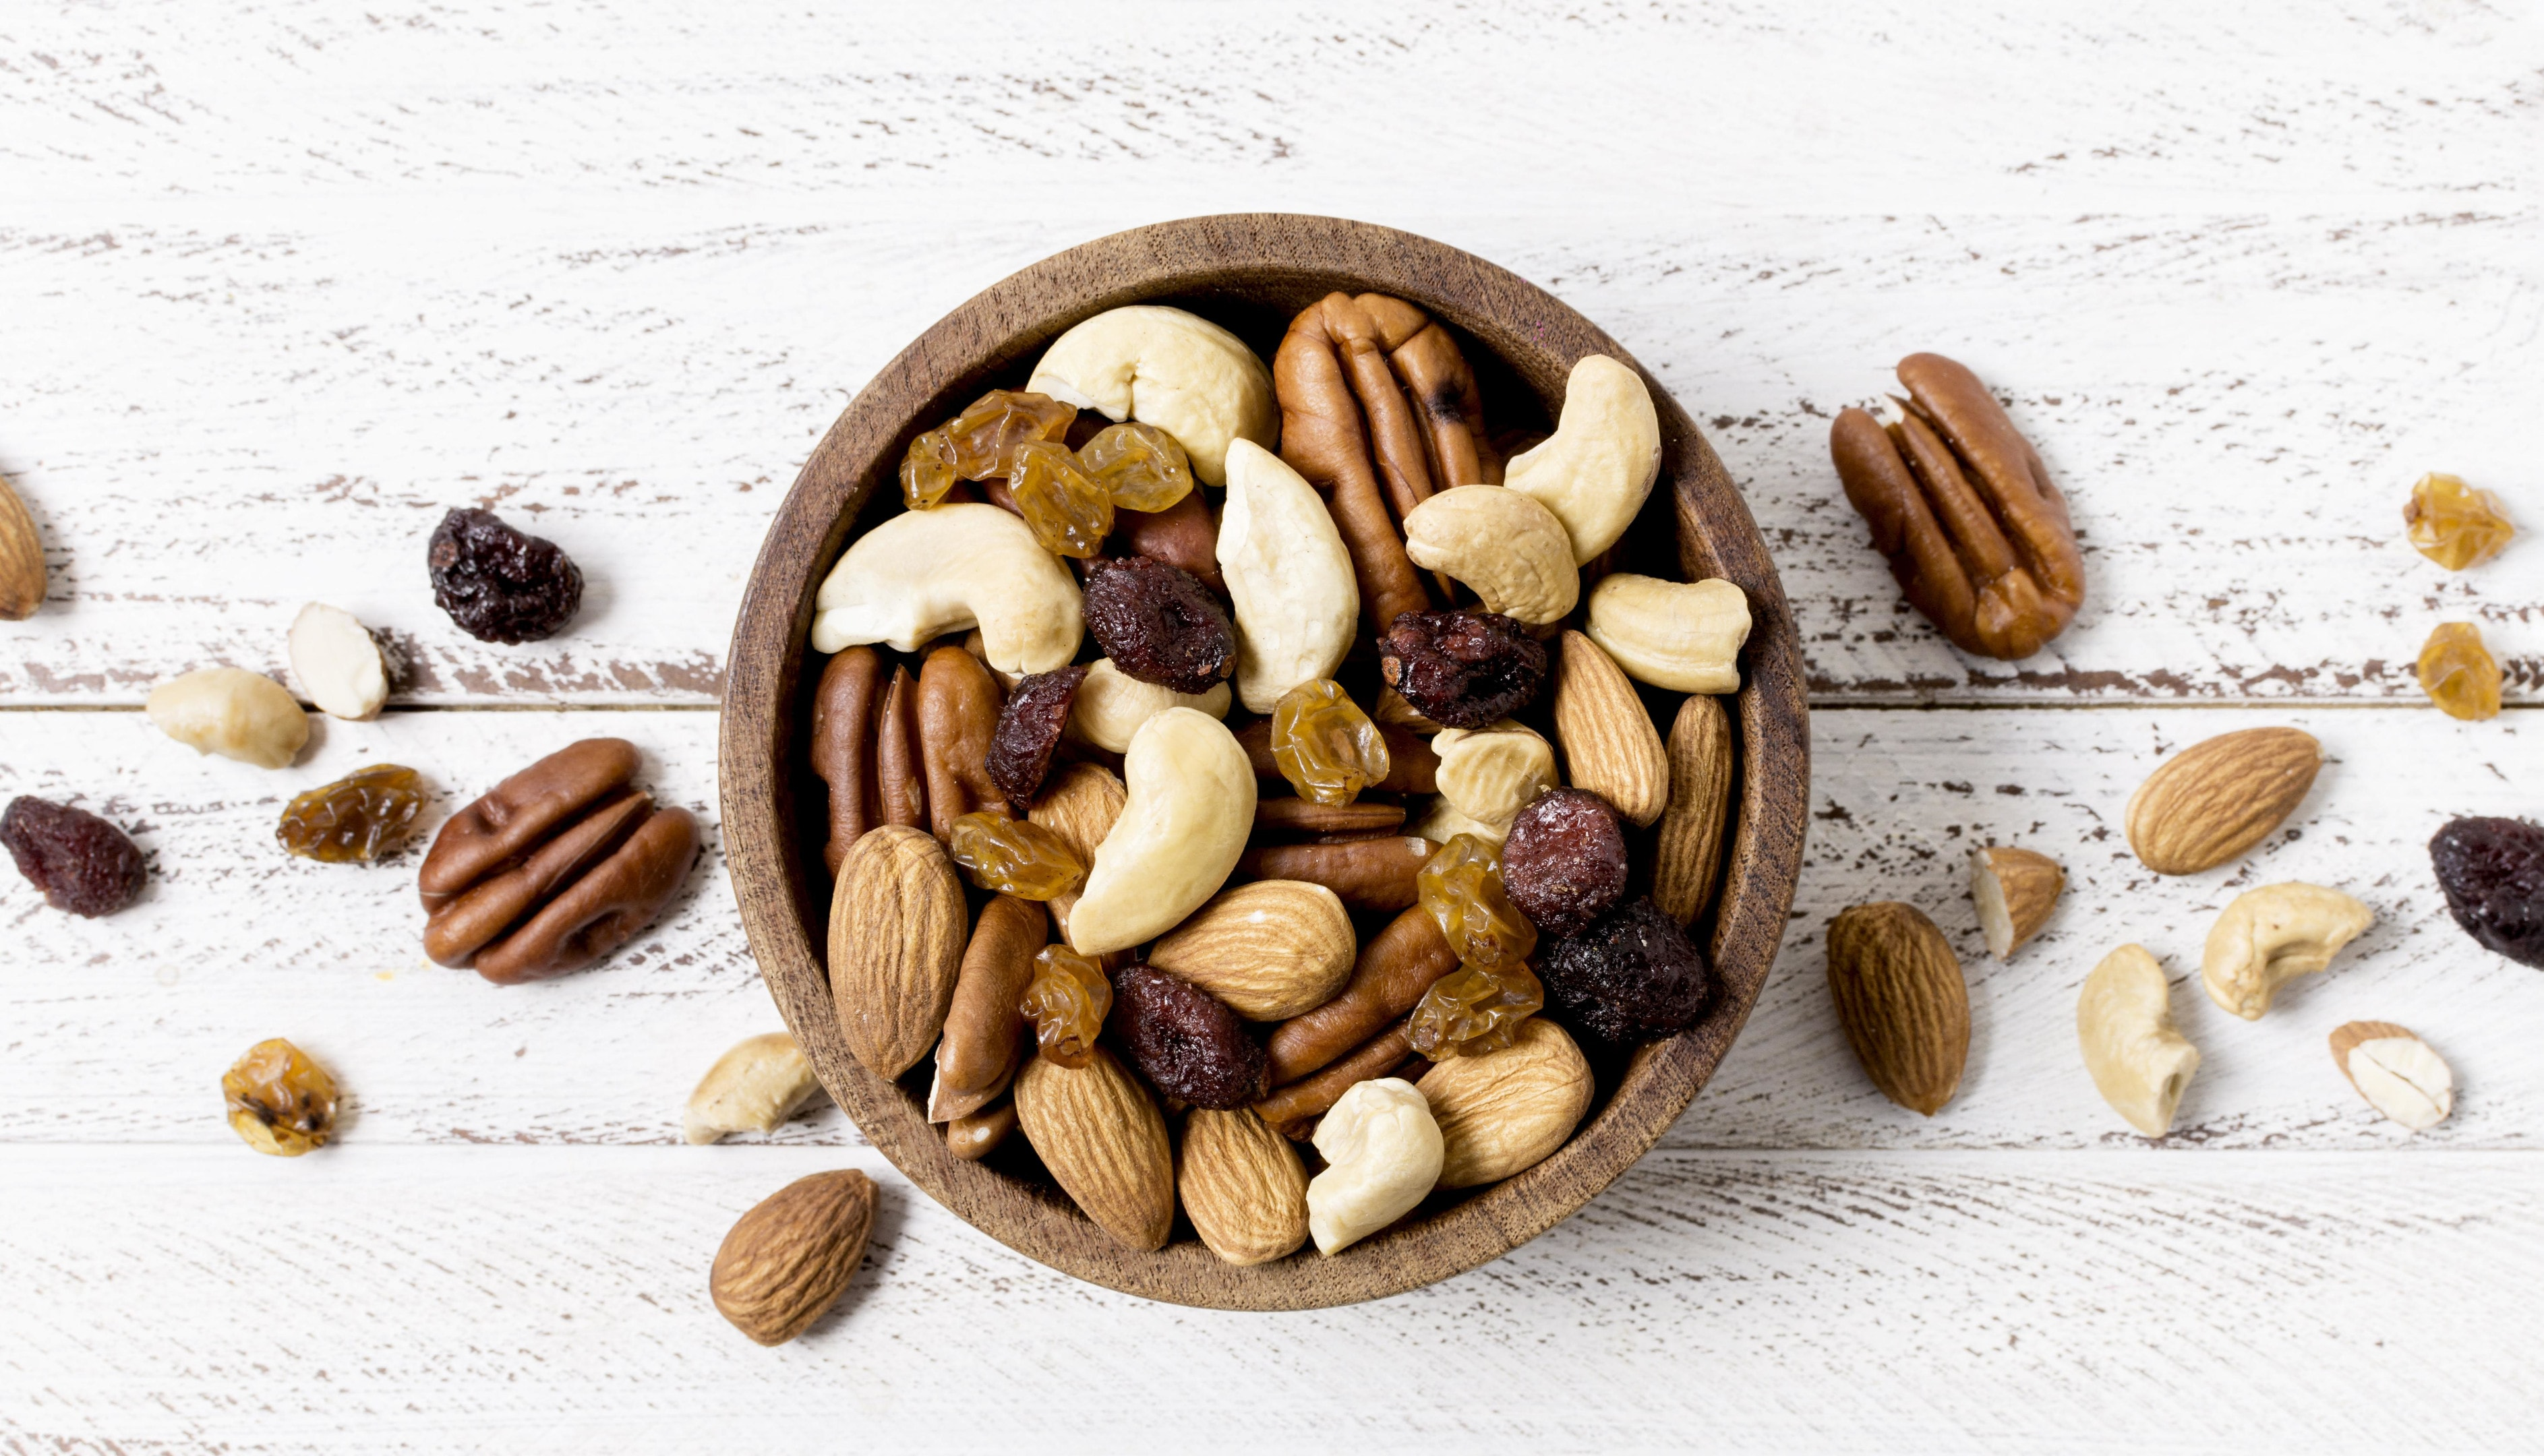 Bowl with assortment of nuts